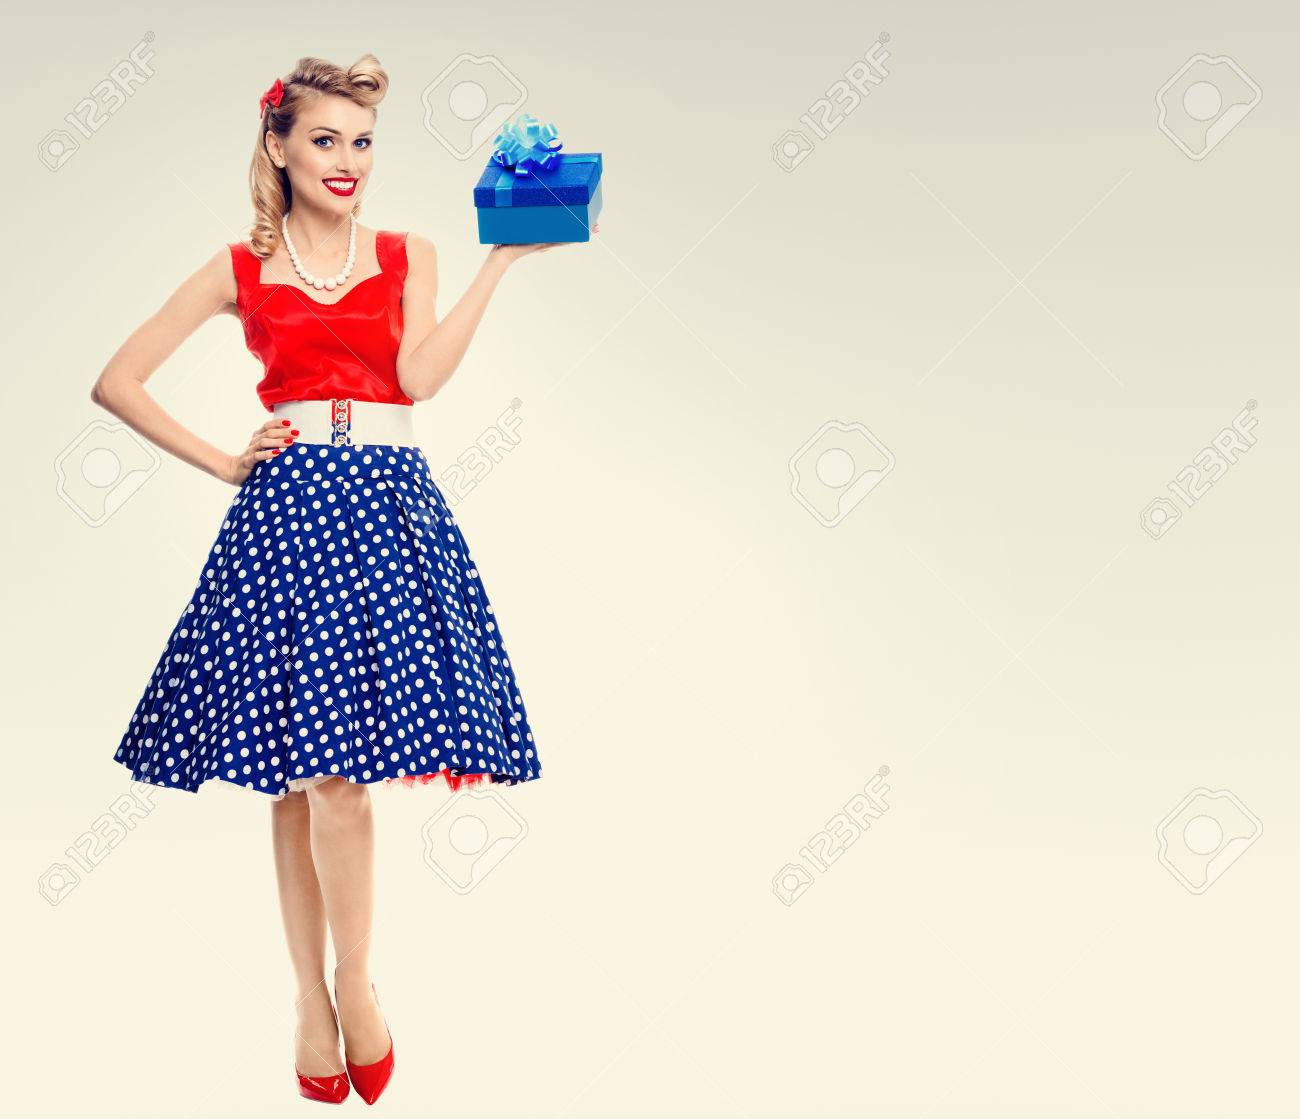 Full body portrait of smiling woman dressed in pin up style dress..